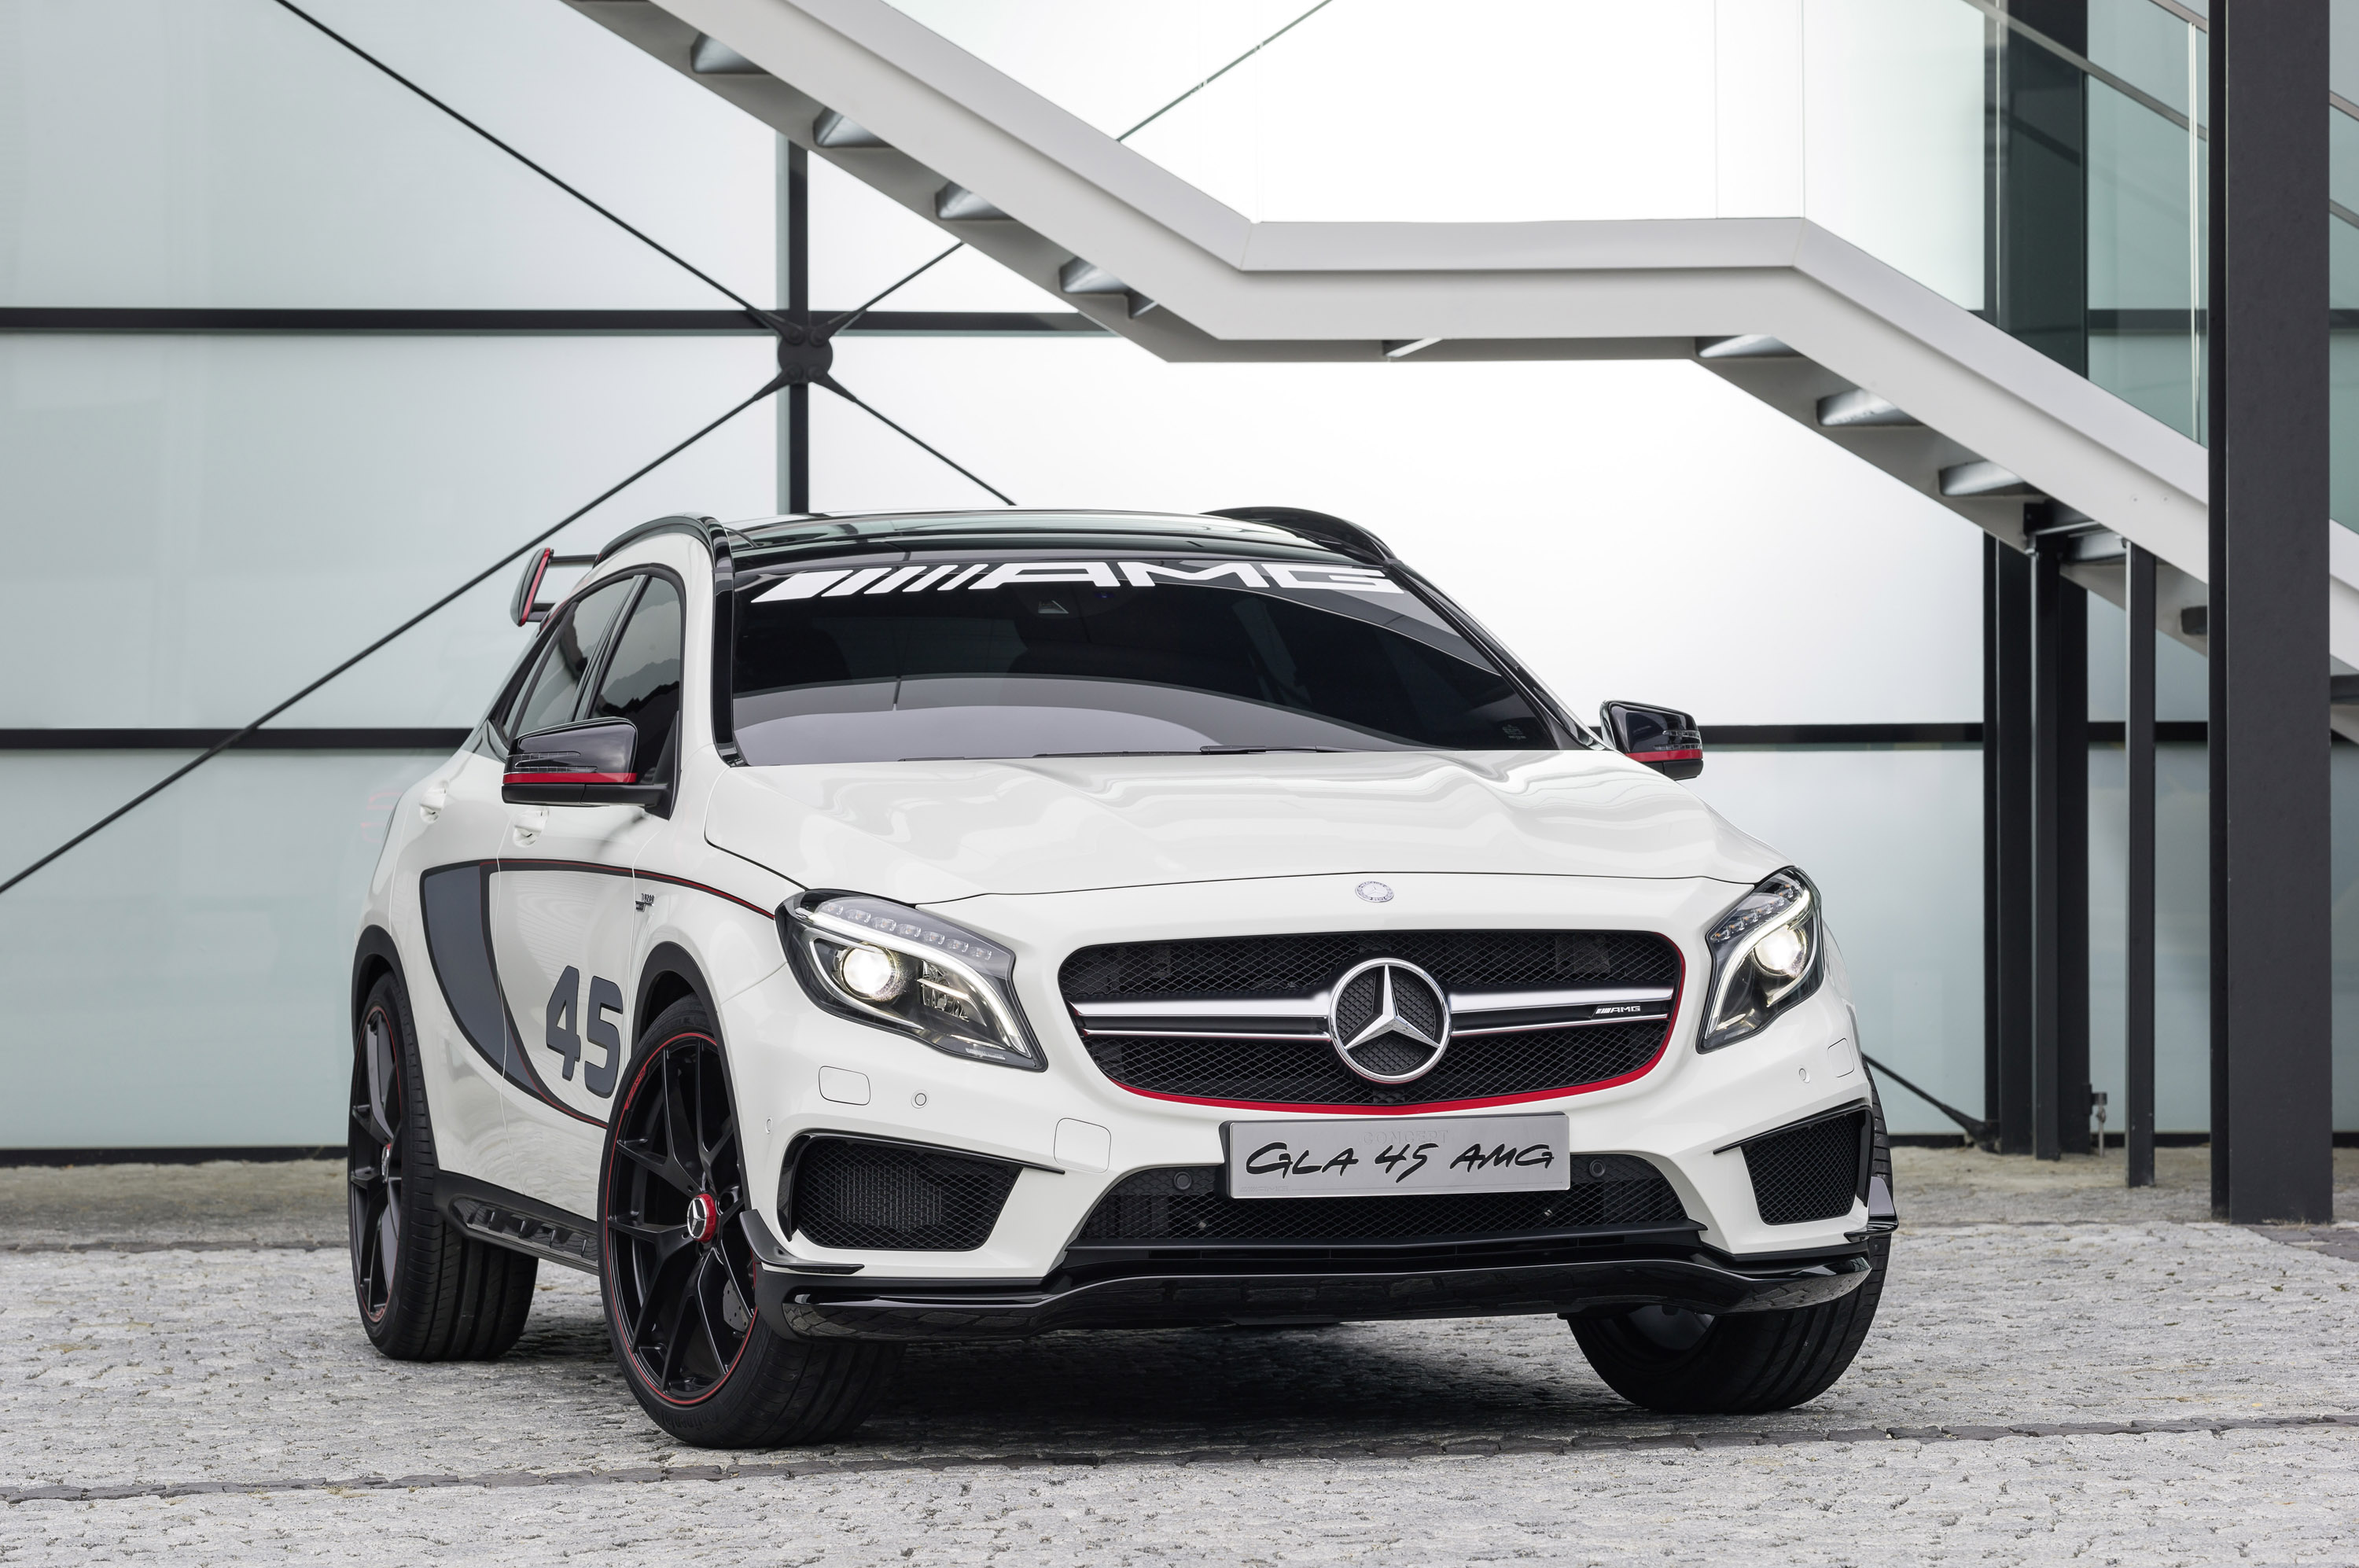 most powerful 4 cylinder engine with mercedes benz gla 45 amg concept. Black Bedroom Furniture Sets. Home Design Ideas